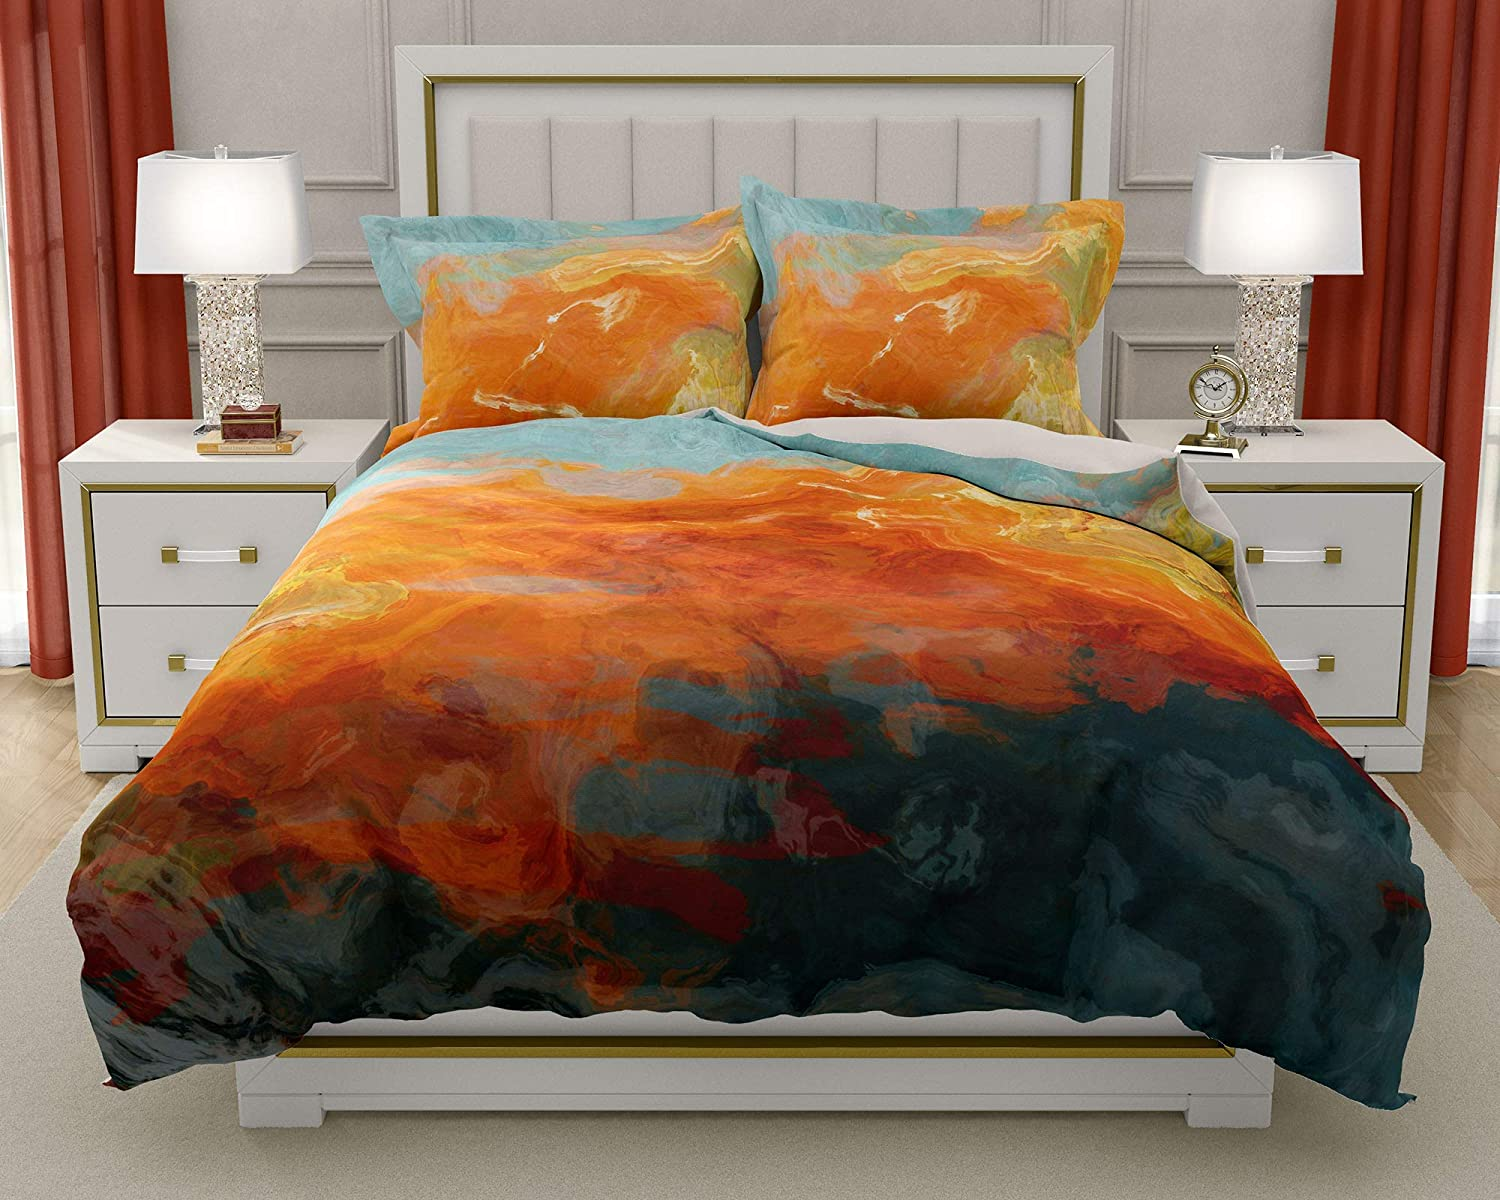 Image of Home and Kitchen King or Queen 3 pc Duvet Cover Set with abstract art, Electric